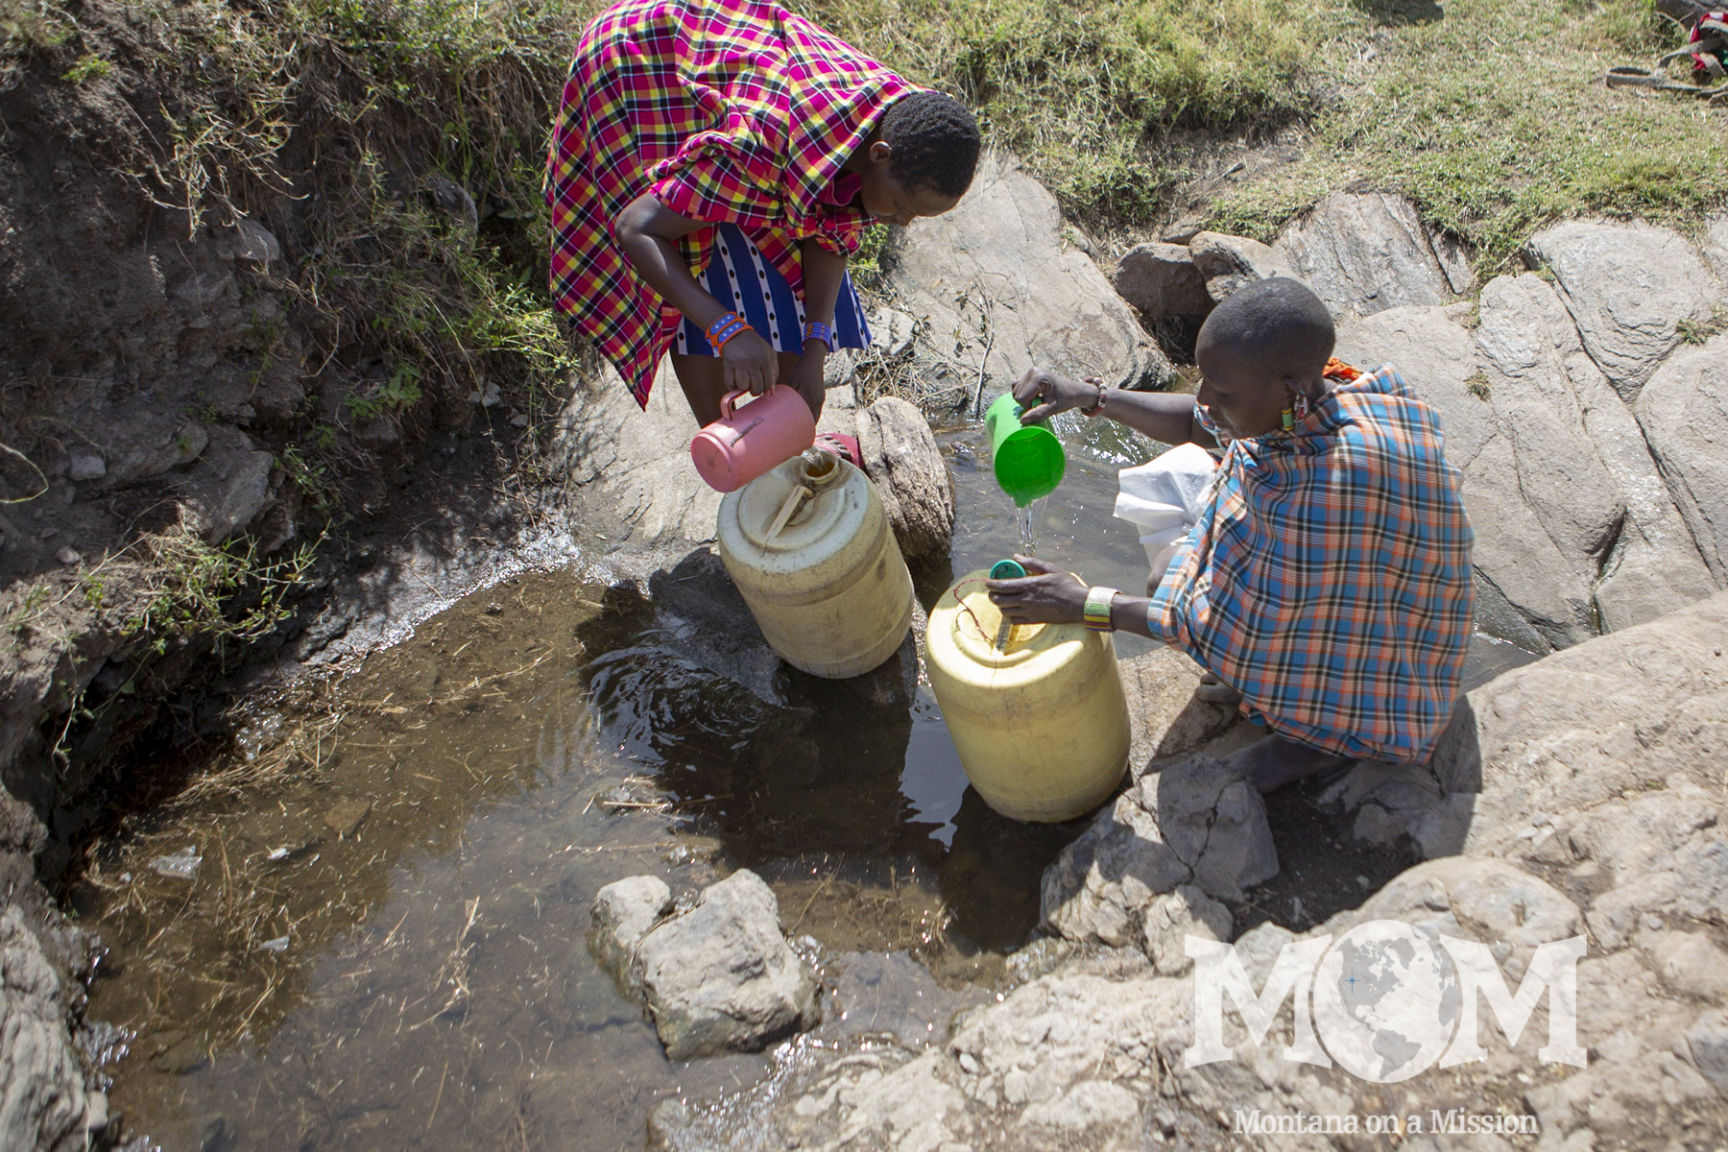 water scarcity makes life in emurua dikkir a struggle for the families there. Montana on a Mission partners with the community to bring clean water and opportunities.